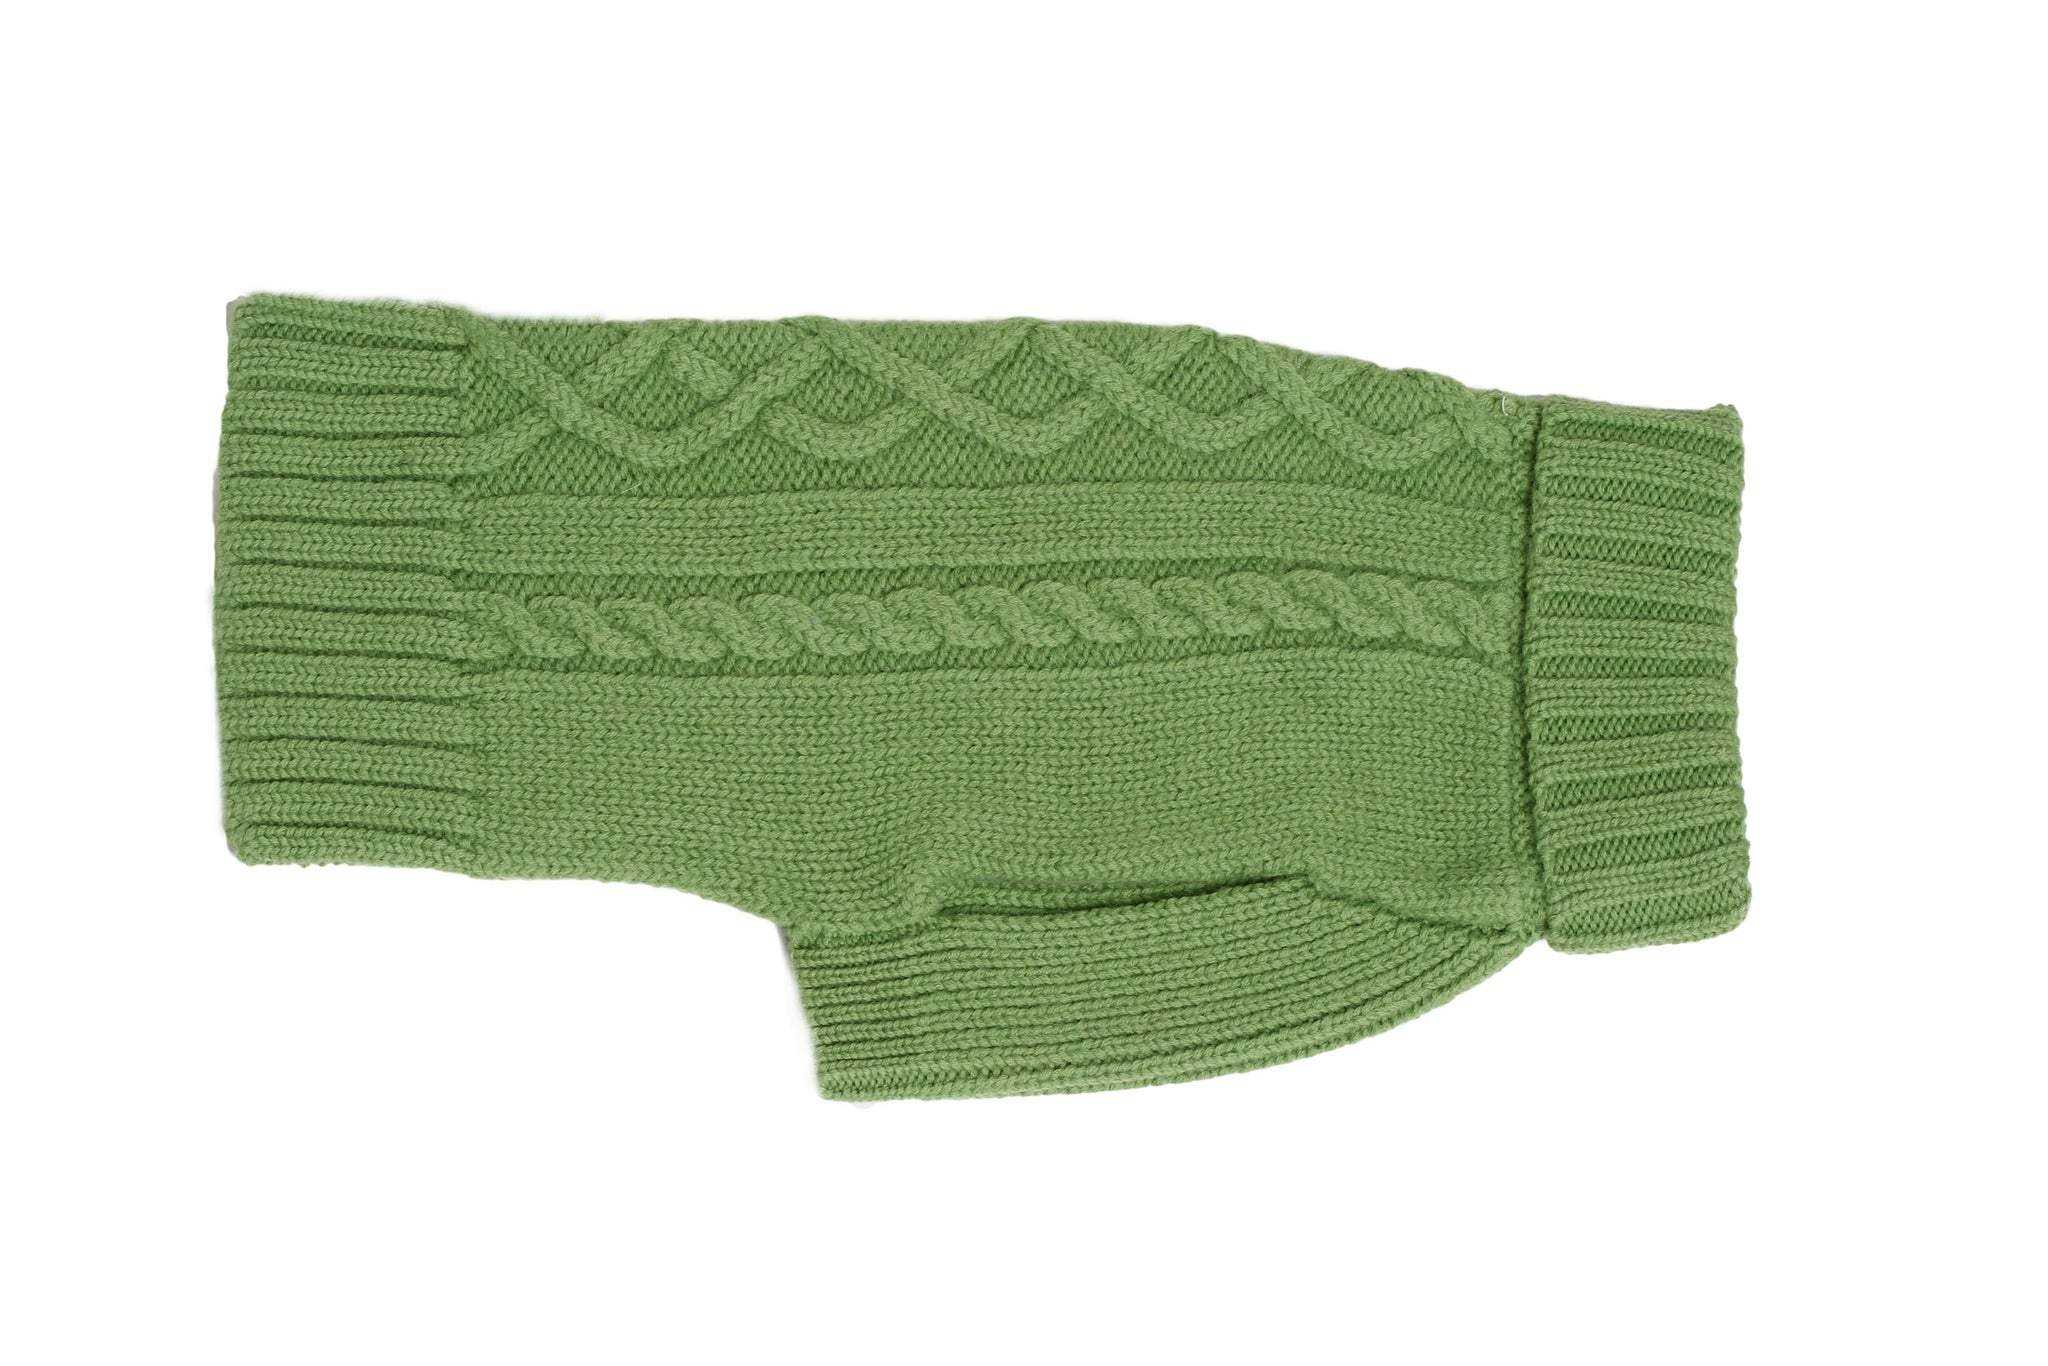 Vineyard Sweater - Wool Dog Sweater - 3 Color Options